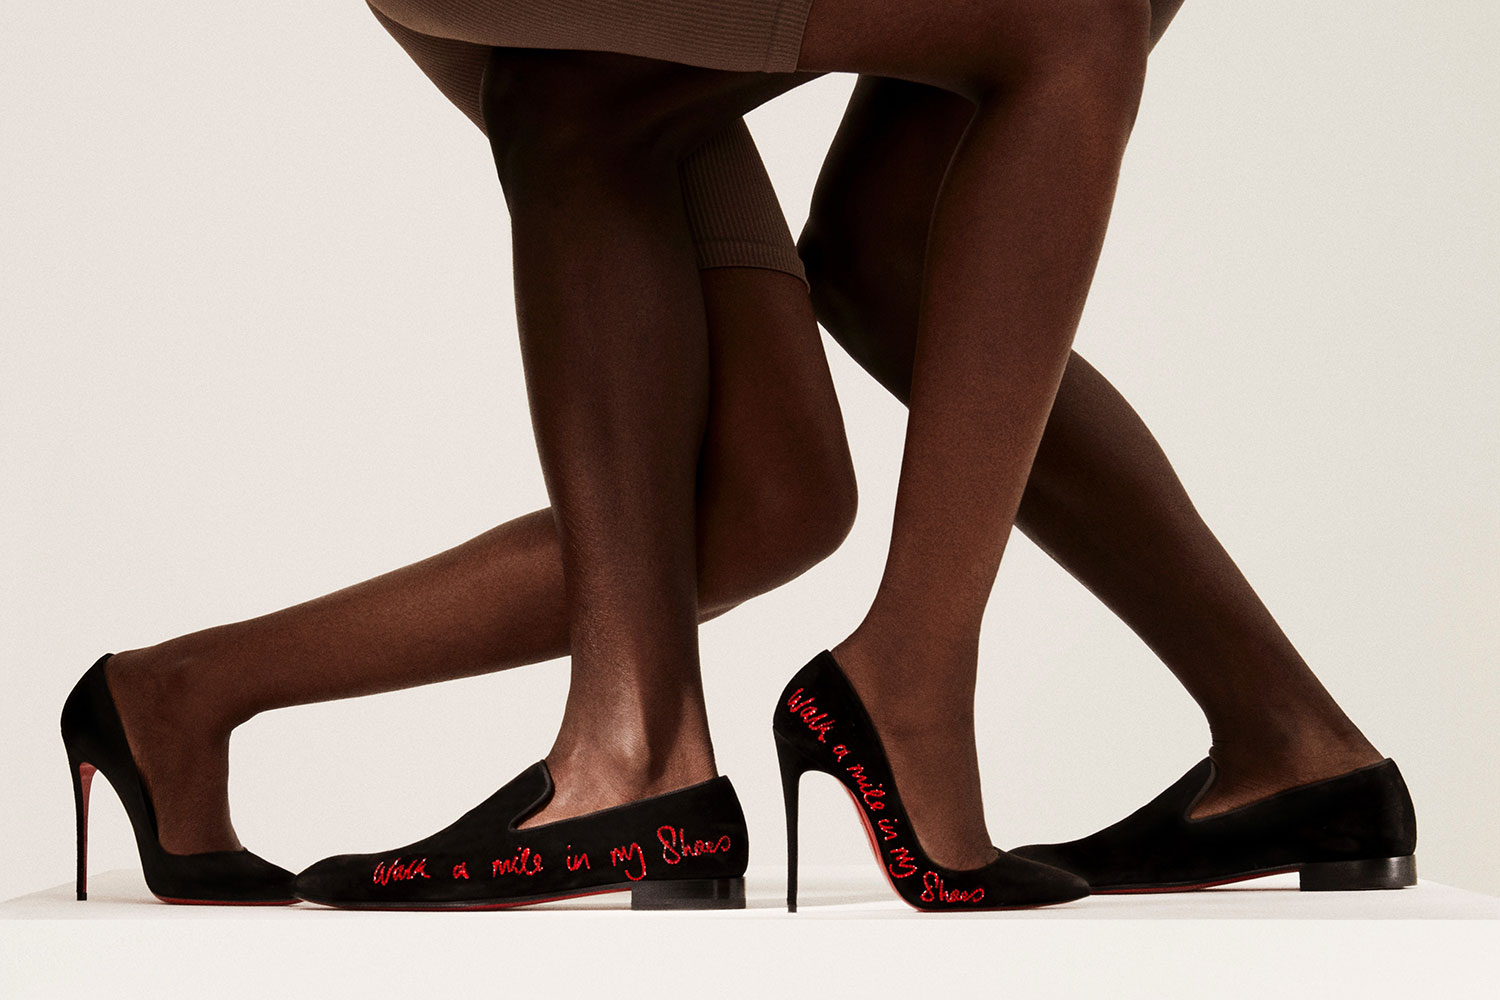 Christian Louboutin launches charity collection